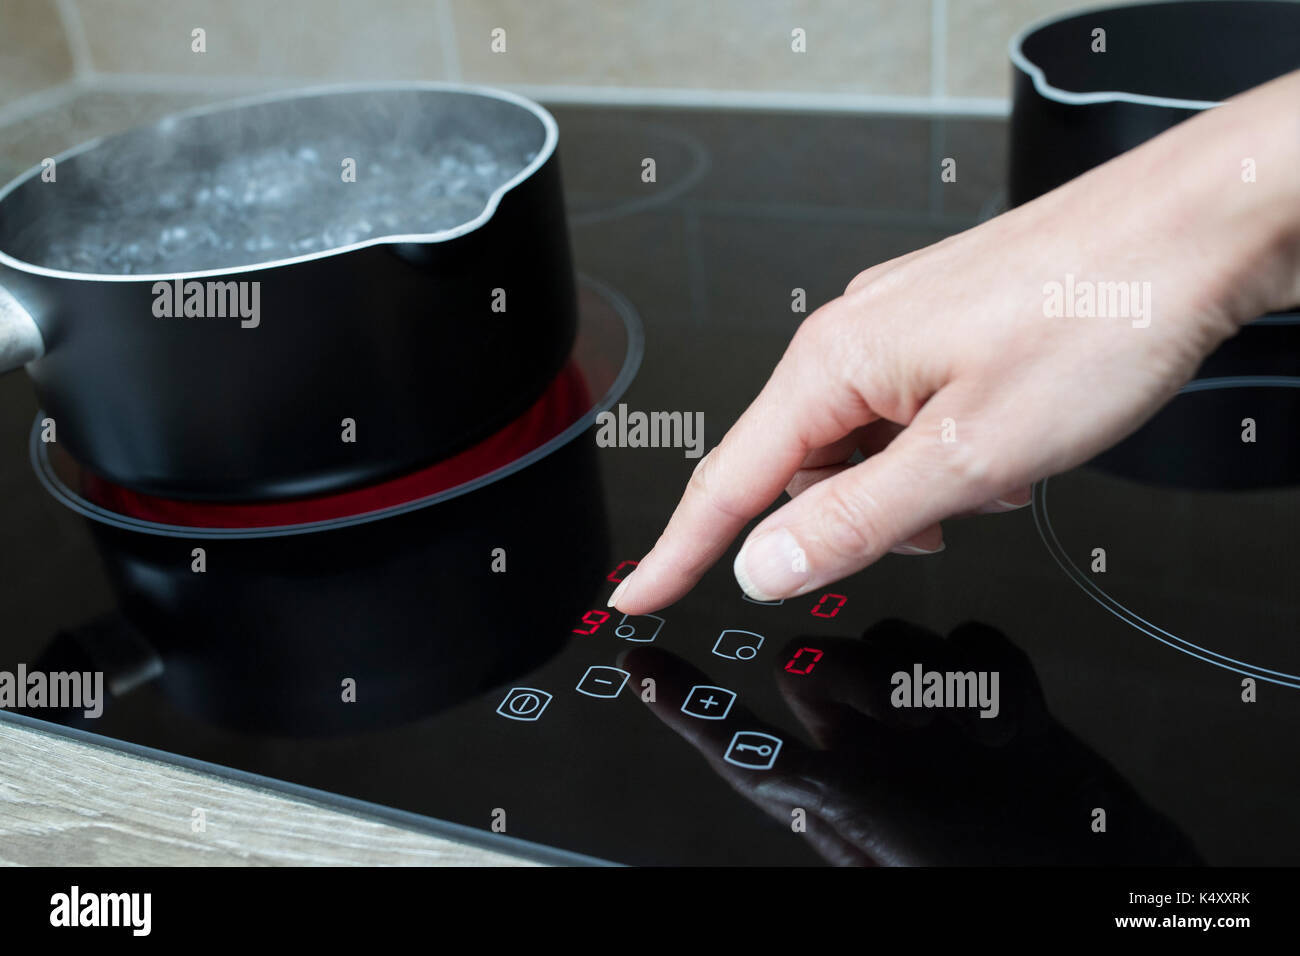 Close Up Of Woman Adjusting Temperature Of Halogen Hob In Kitchen - Stock Image